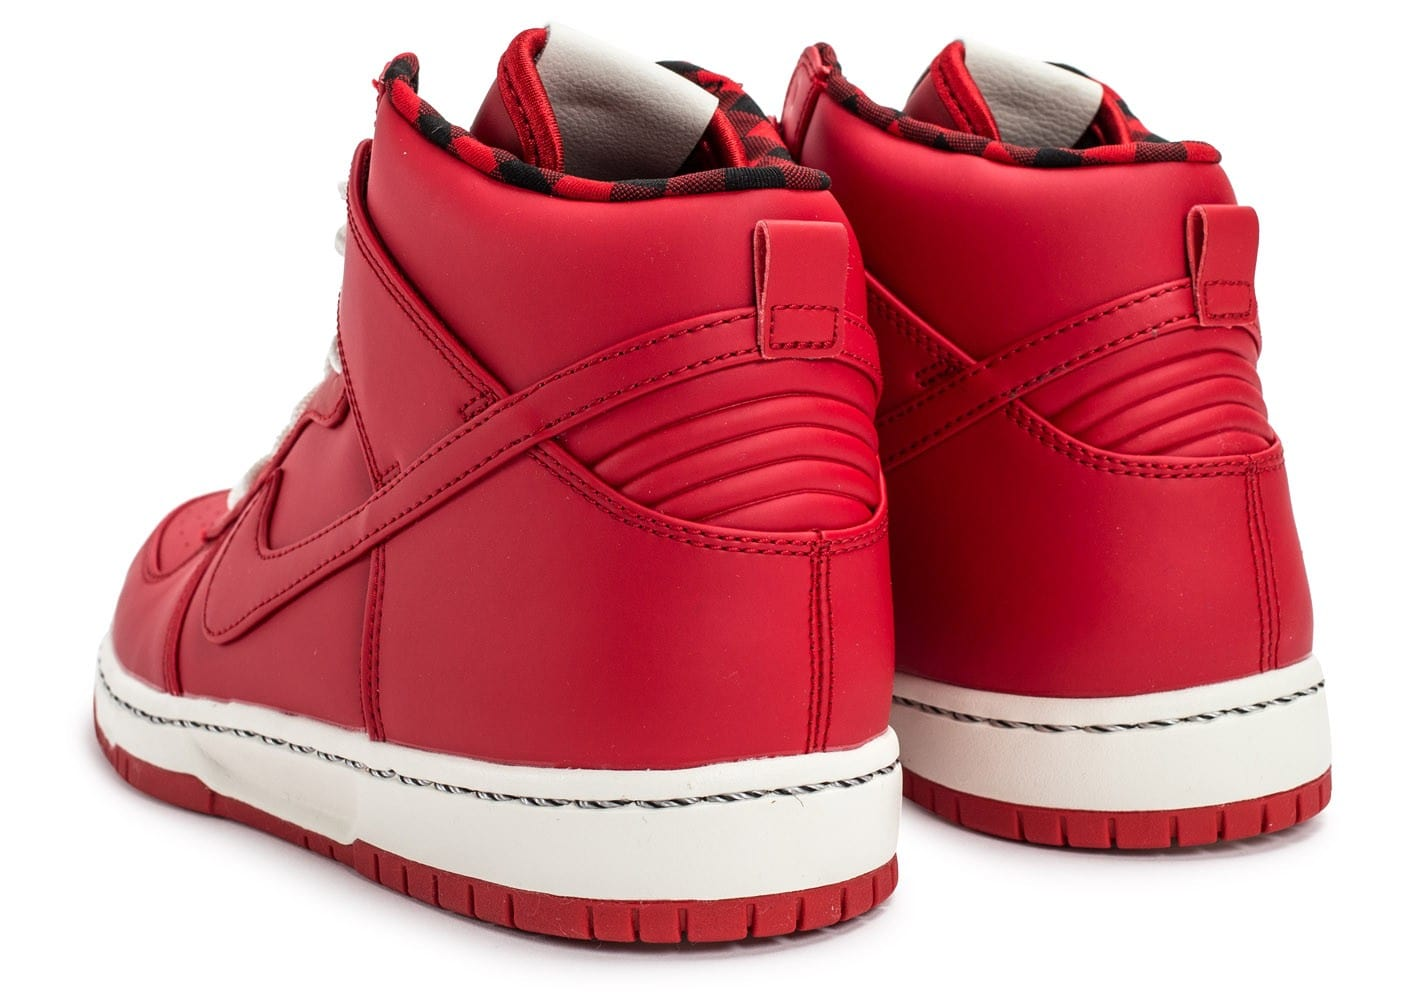 finest selection f8dce f7287 ... shop chaussures nike dunk high ultra rain rouge vue dessous bf7ce 5f8d5